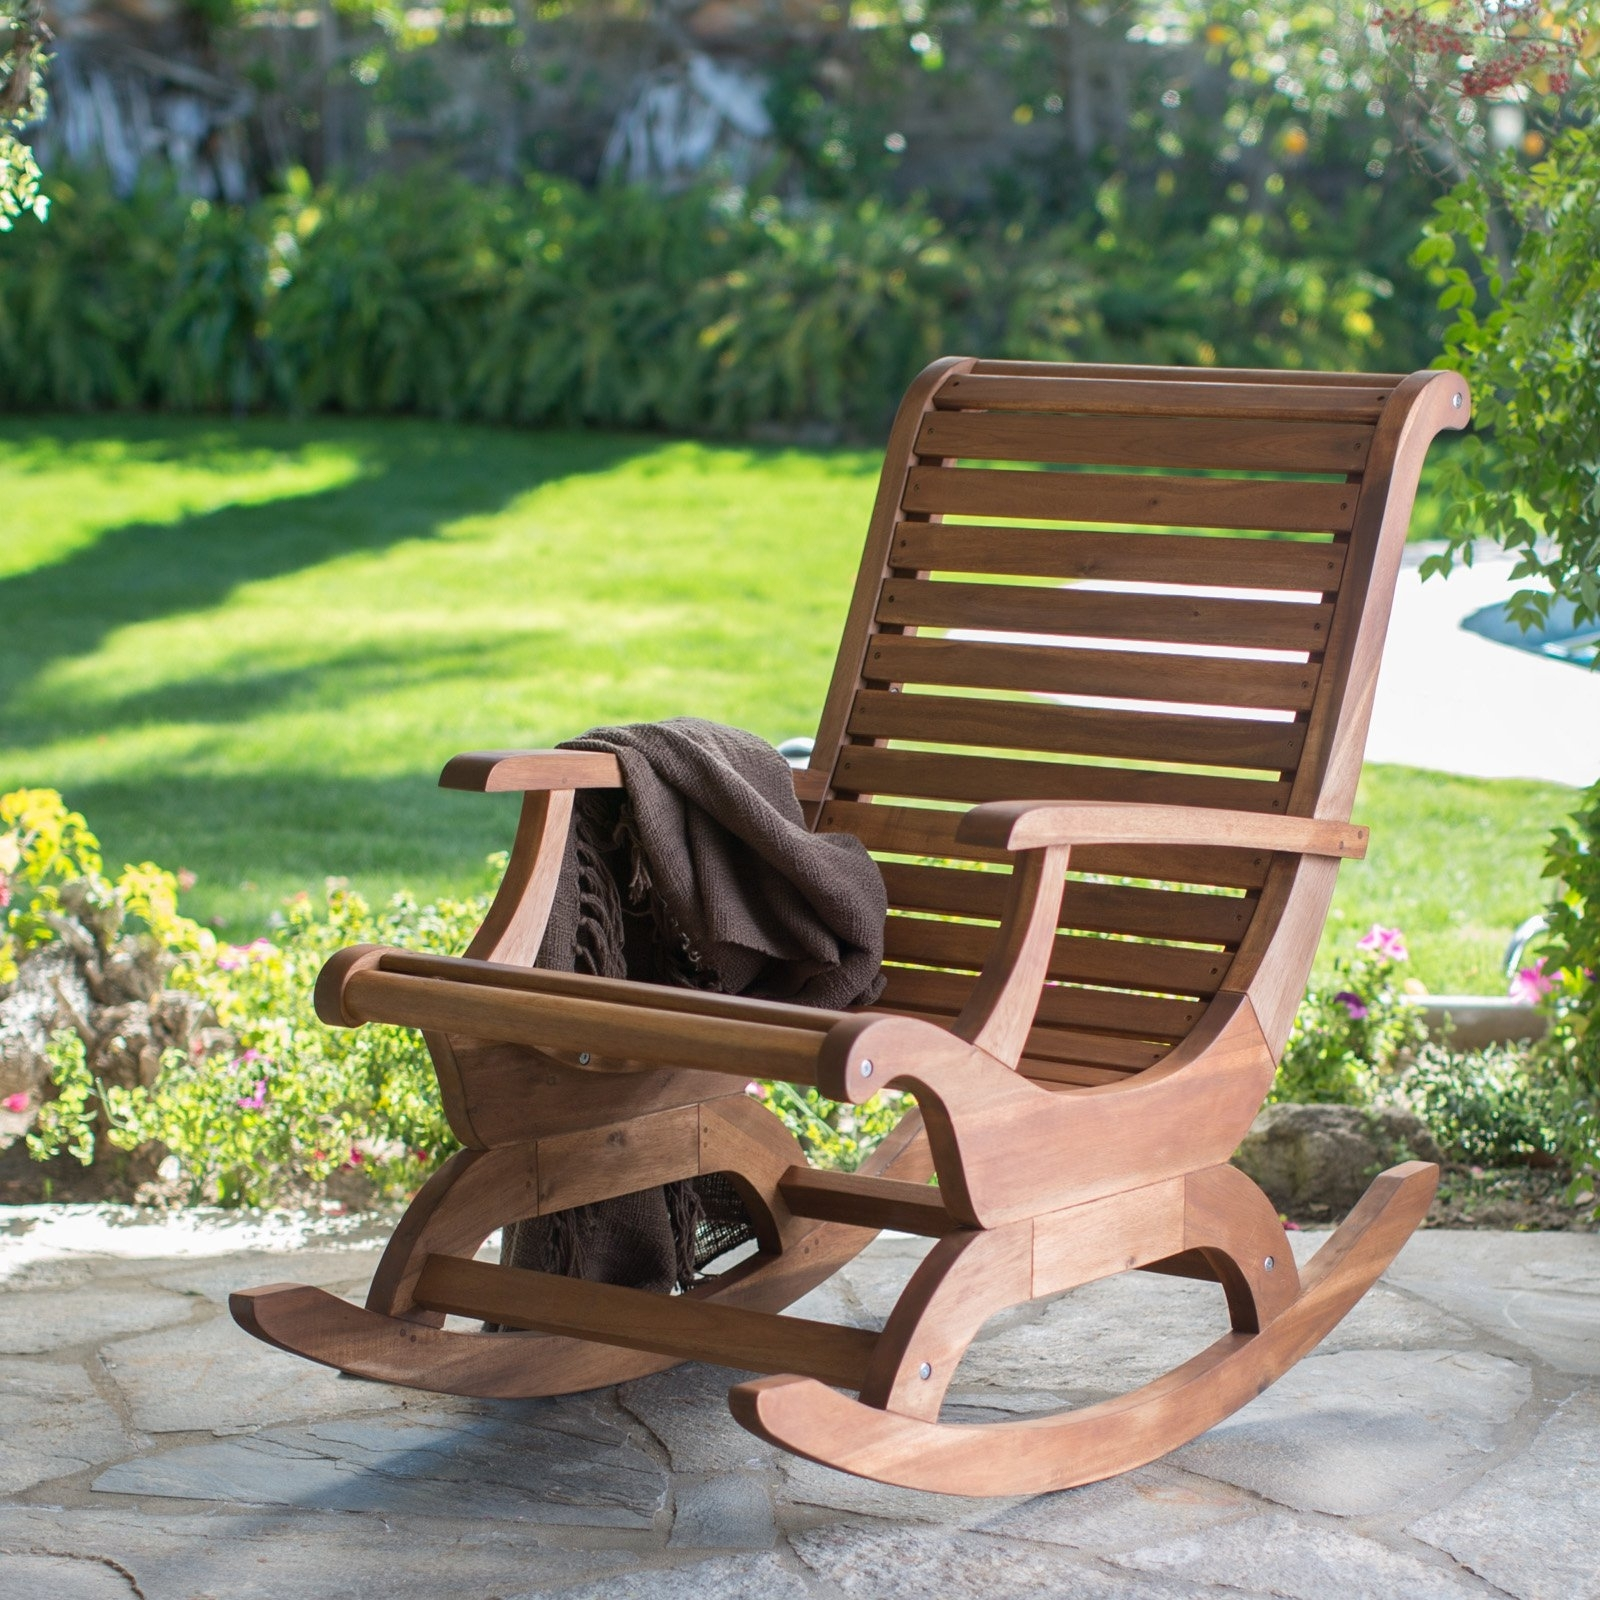 Belham Living Avondale Oversized Outdoor Rocking Chair – Natural With Regard To Well Liked Oversized Patio Rocking Chairs (View 2 of 20)